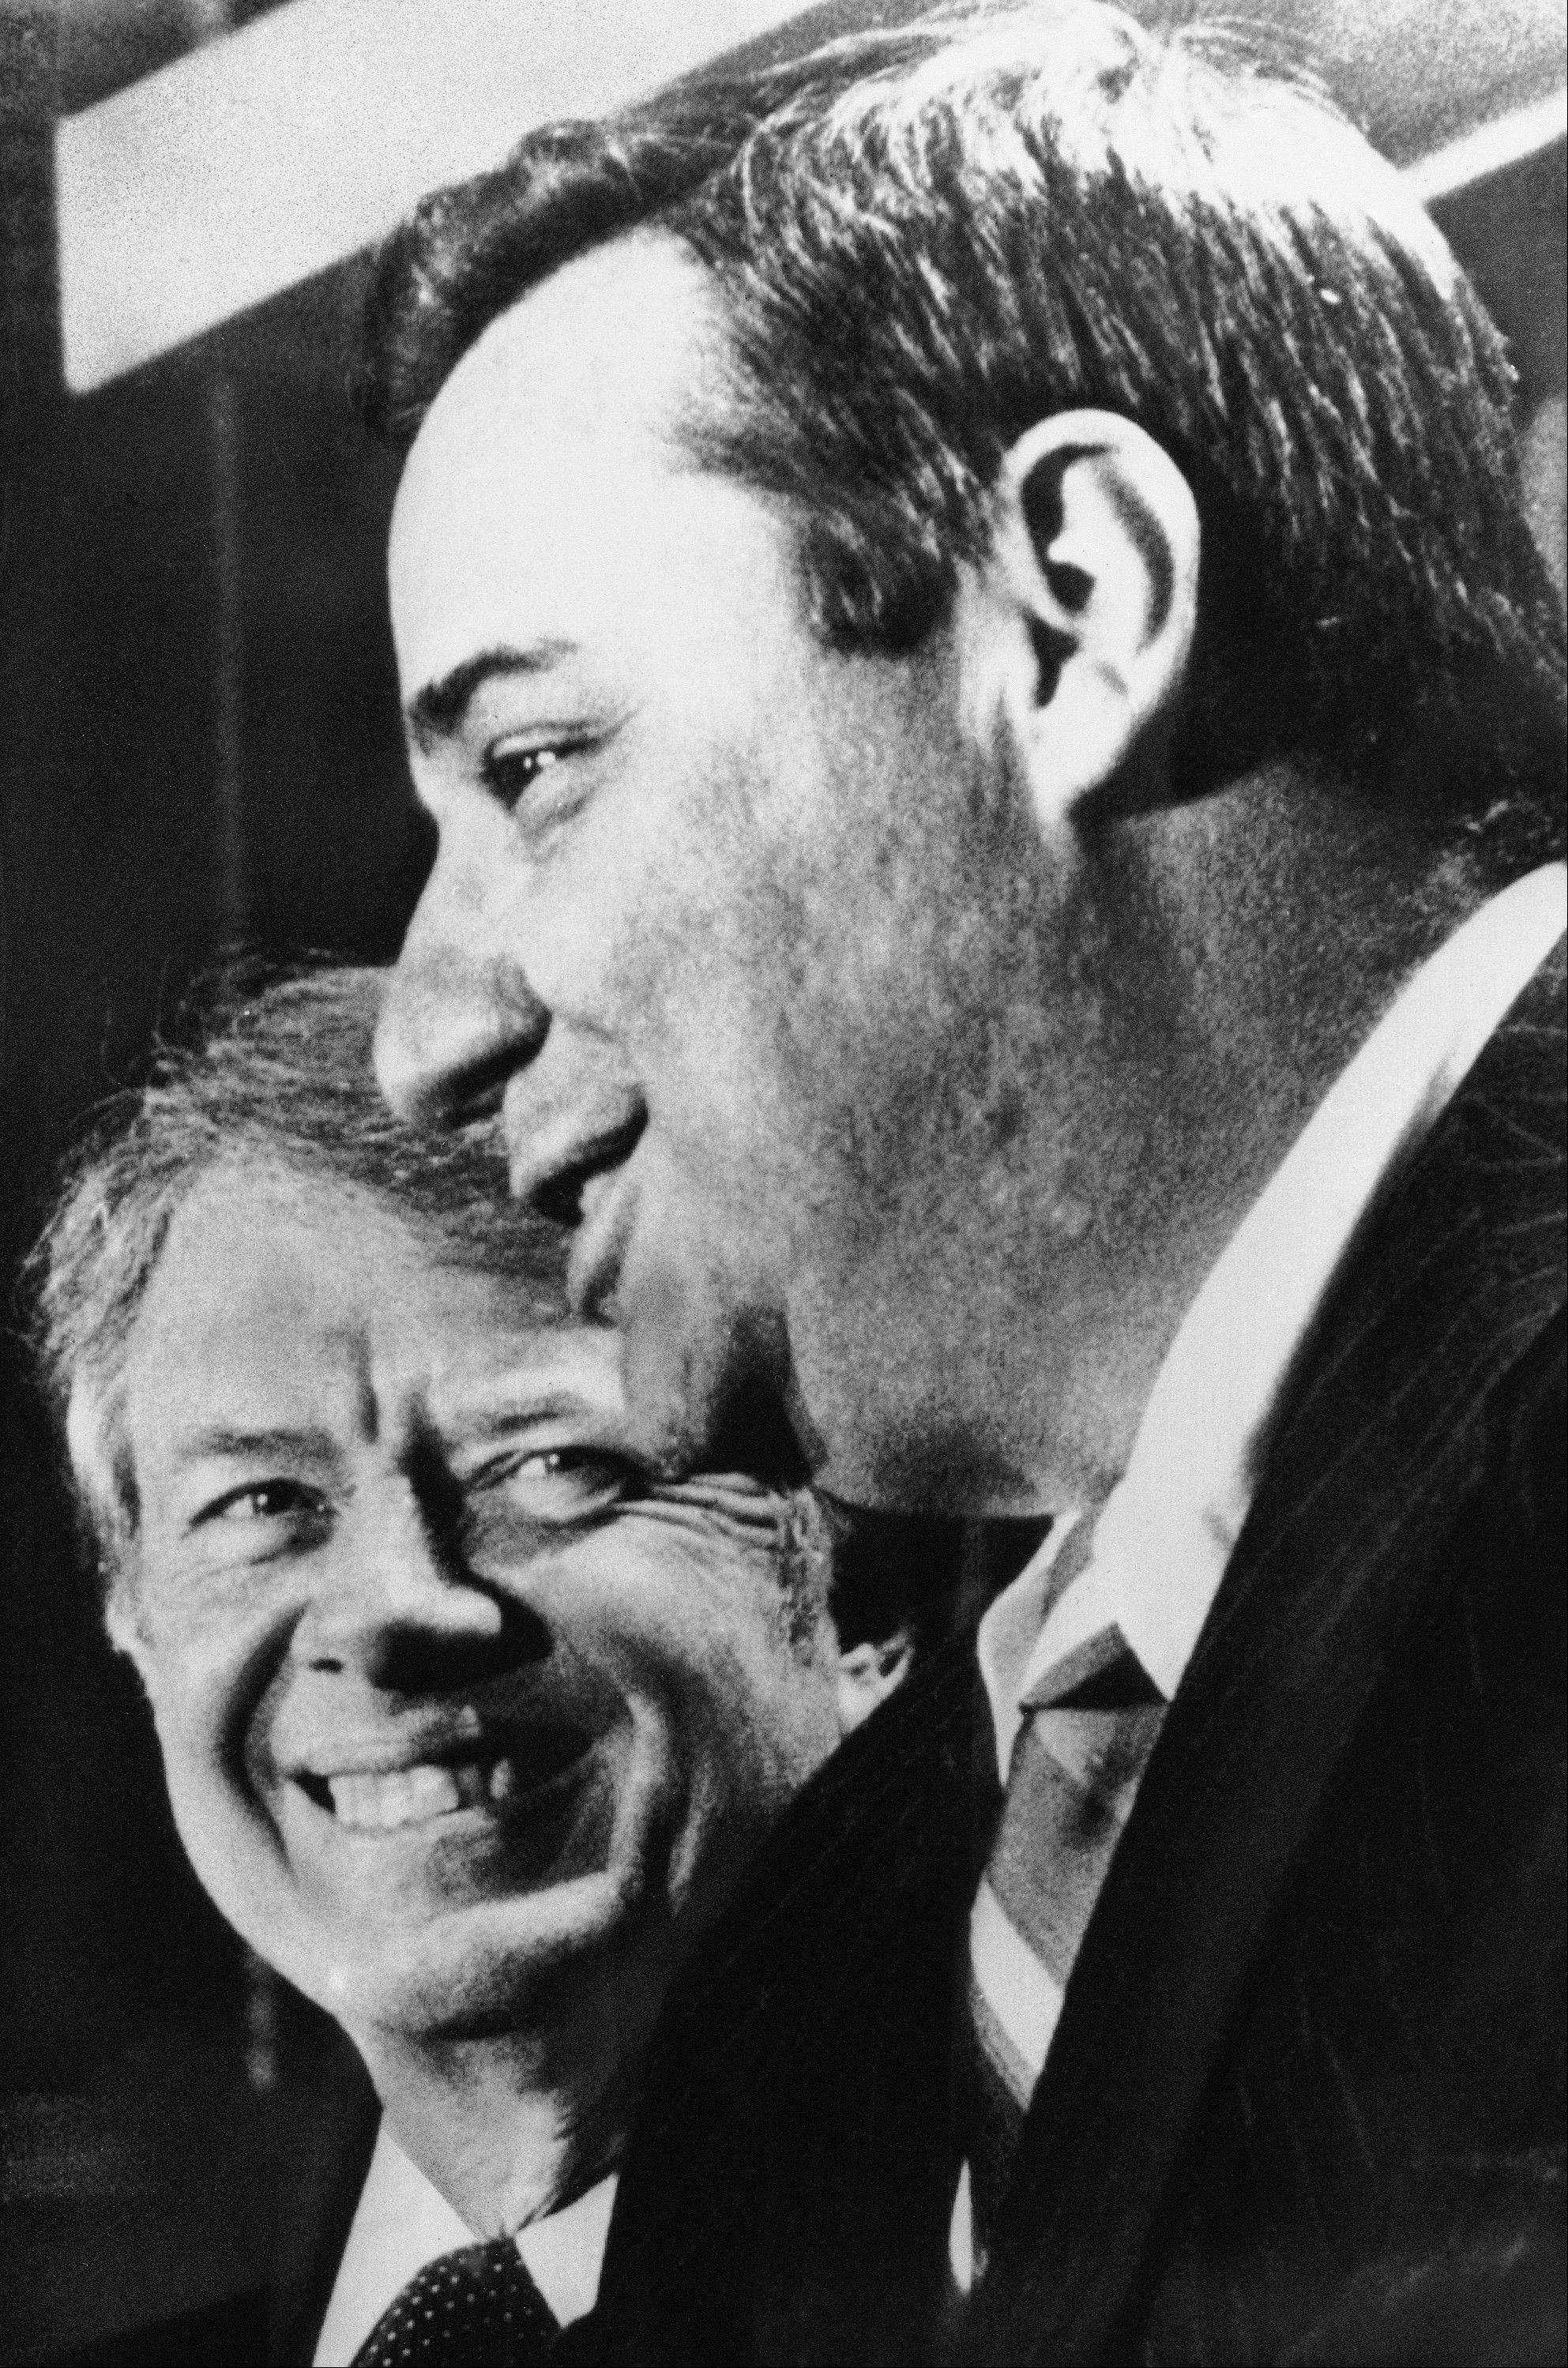 President Jimmy Carter smiles as he listens to Bert Lance, foreground, his choice for Director of the Office of Management and the Budget.